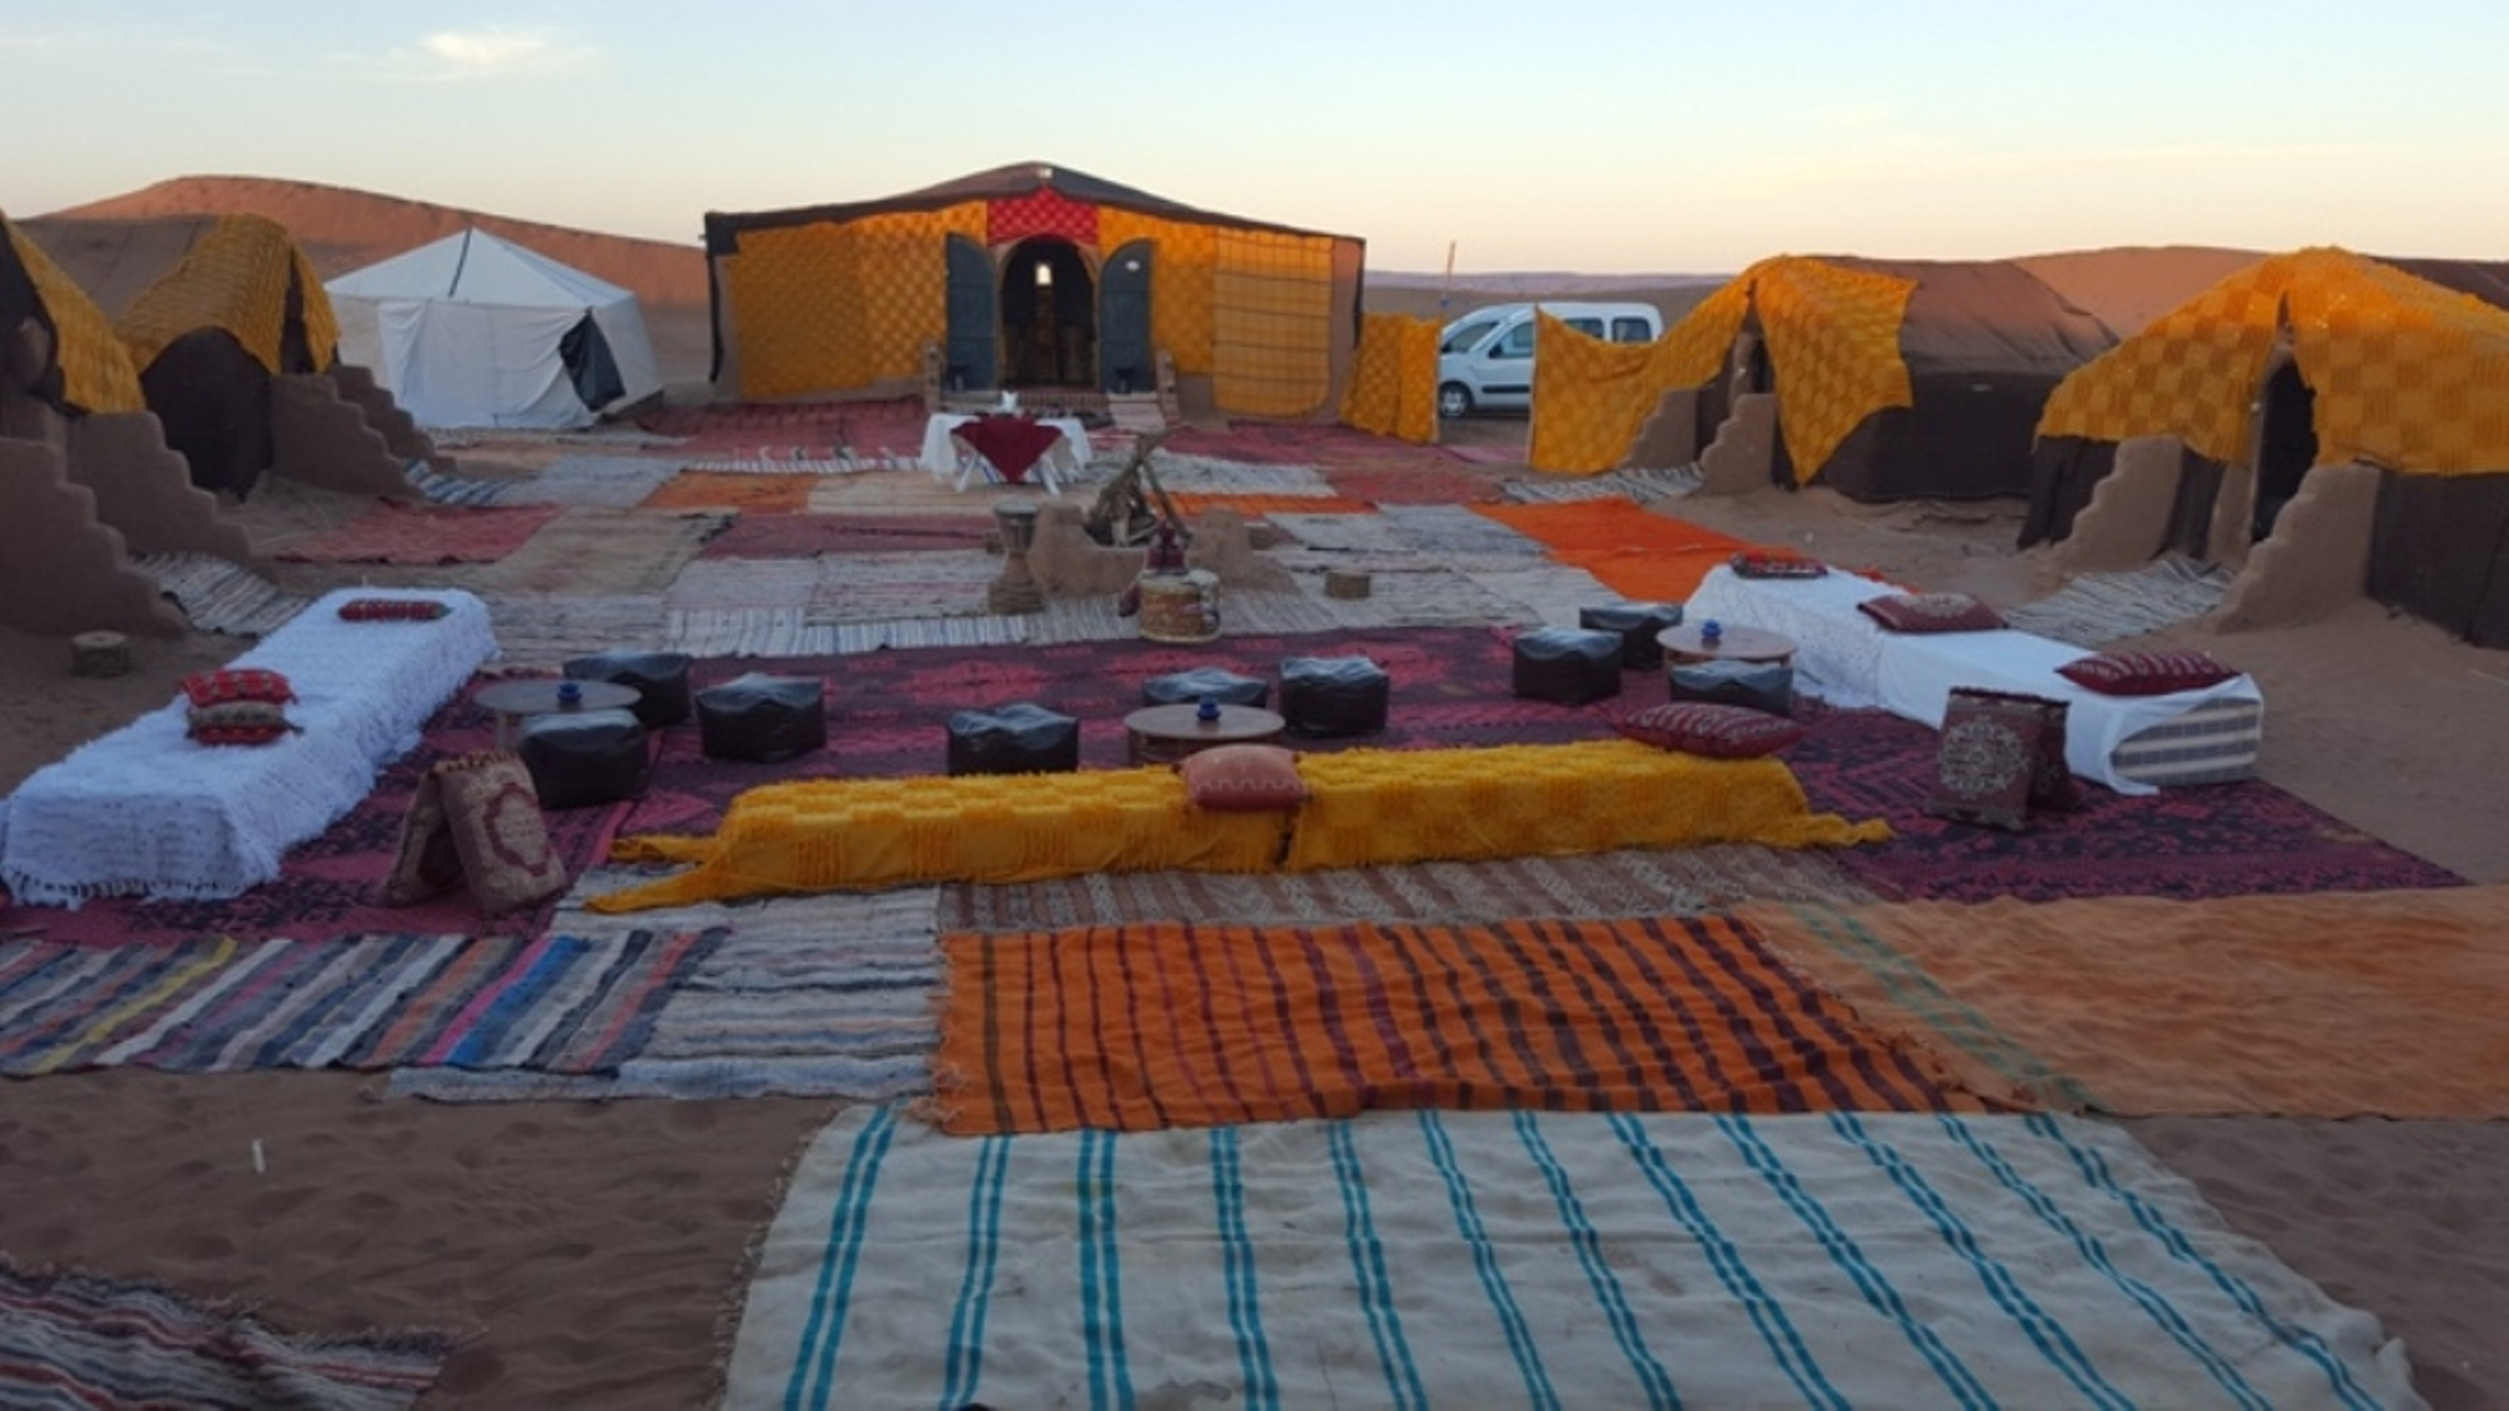 Our Camp at the gate of the desert